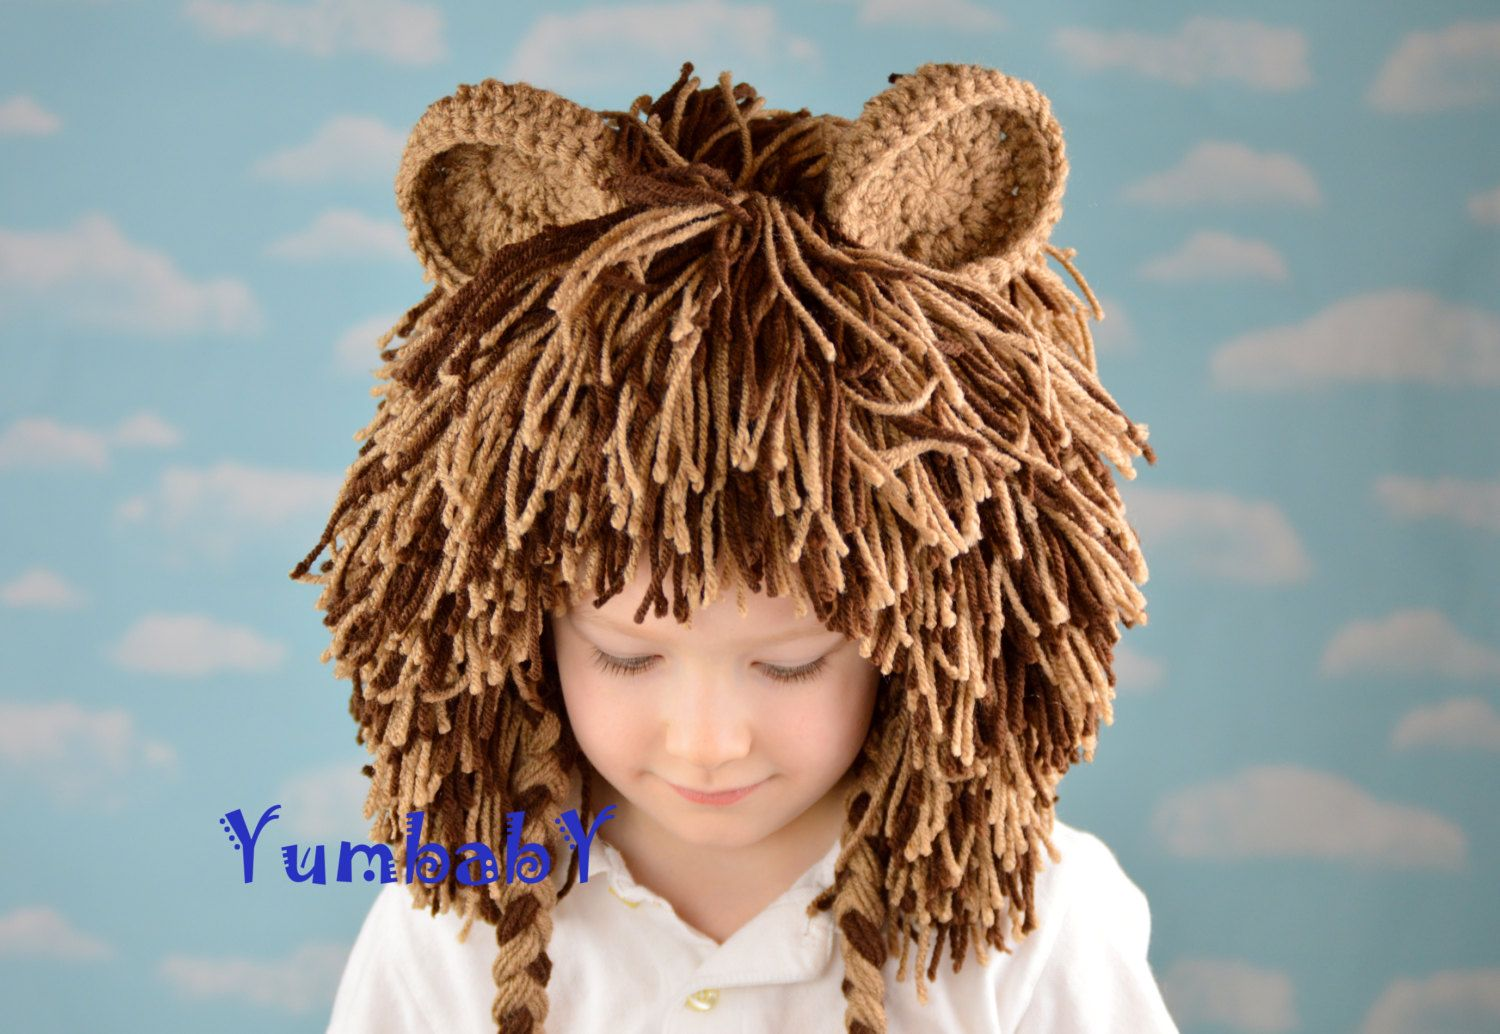 Dark brown hair color boy this lion wig is great for halloween birthdays parades and dress